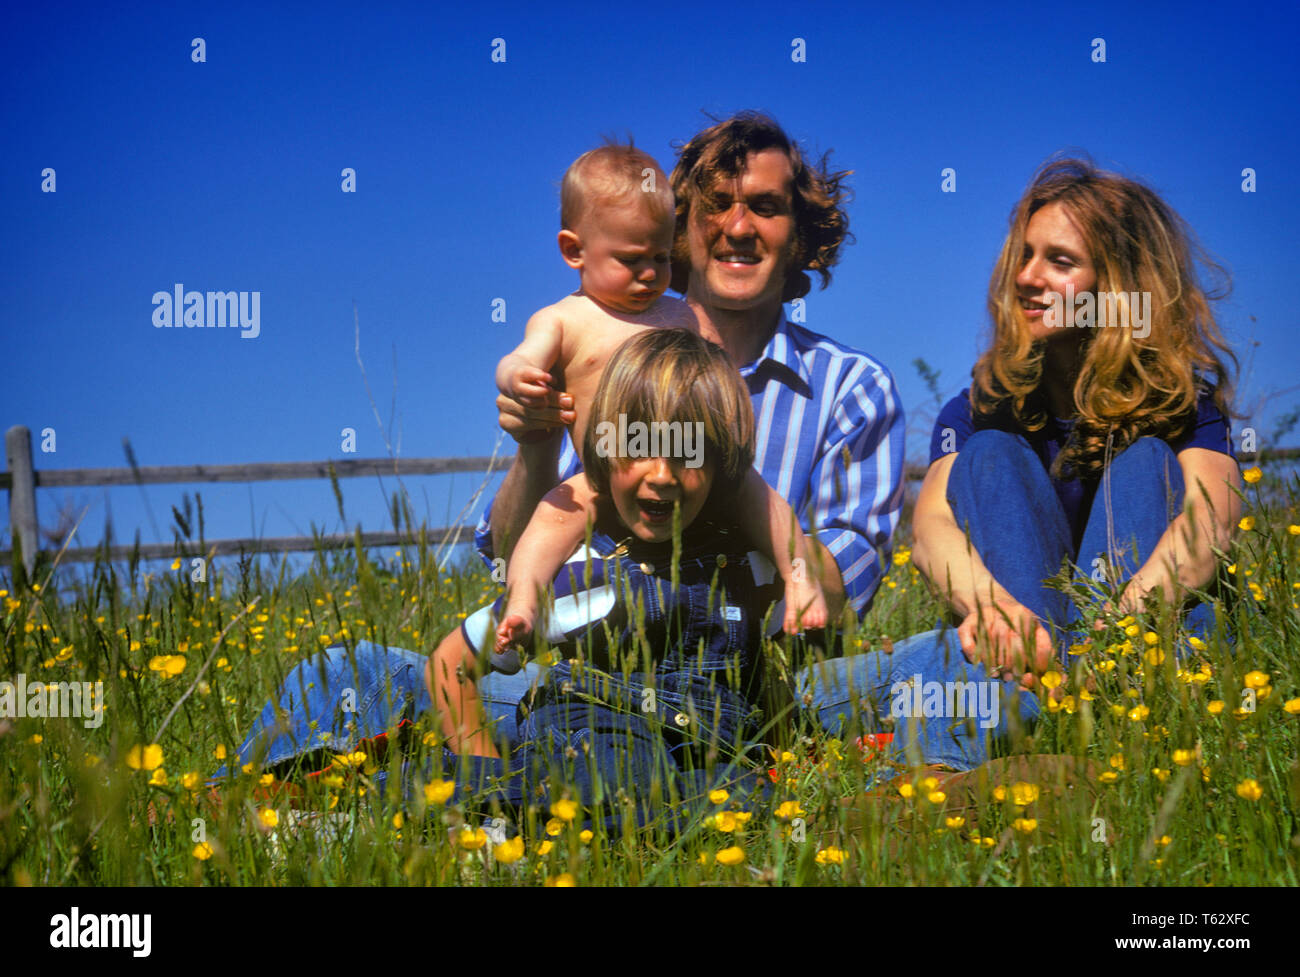 1970s SMILING HAPPY HIPPIE FAMILY OF FOUR FATHER MOTHER TODDLER AND BABY SONS SITTING TOGETHER IN SPRING FIELD OF WILDFLOWERS - kj6287 HAR001 HARS HUSBAND DAD FOUR MOM CLOTHING FACES NOSTALGIC PAIR ROMANCE 4 BEAUTY SPRING COLOR MOTHERS EXPRESSION OLD TIME HIPPIE NOSTALGIA BROTHER OLD FASHION 1 JUVENILE FACIAL STYLE TEAMWORK SONS PLEASED FAMILIES JOY LIFESTYLE FEMALES MARRIED BROTHERS RURAL SPOUSE HUSBANDS HEALTHINESS NATURE COPY SPACE FULL-LENGTH LADIES PERSONS SCENIC CARING MALES SIBLINGS SPIRITUALITY CONFIDENCE EXPRESSIONS FATHERS PARTNER FREEDOM WIDE ANGLE HAPPINESS CHEERFUL ADVENTURE - Stock Image